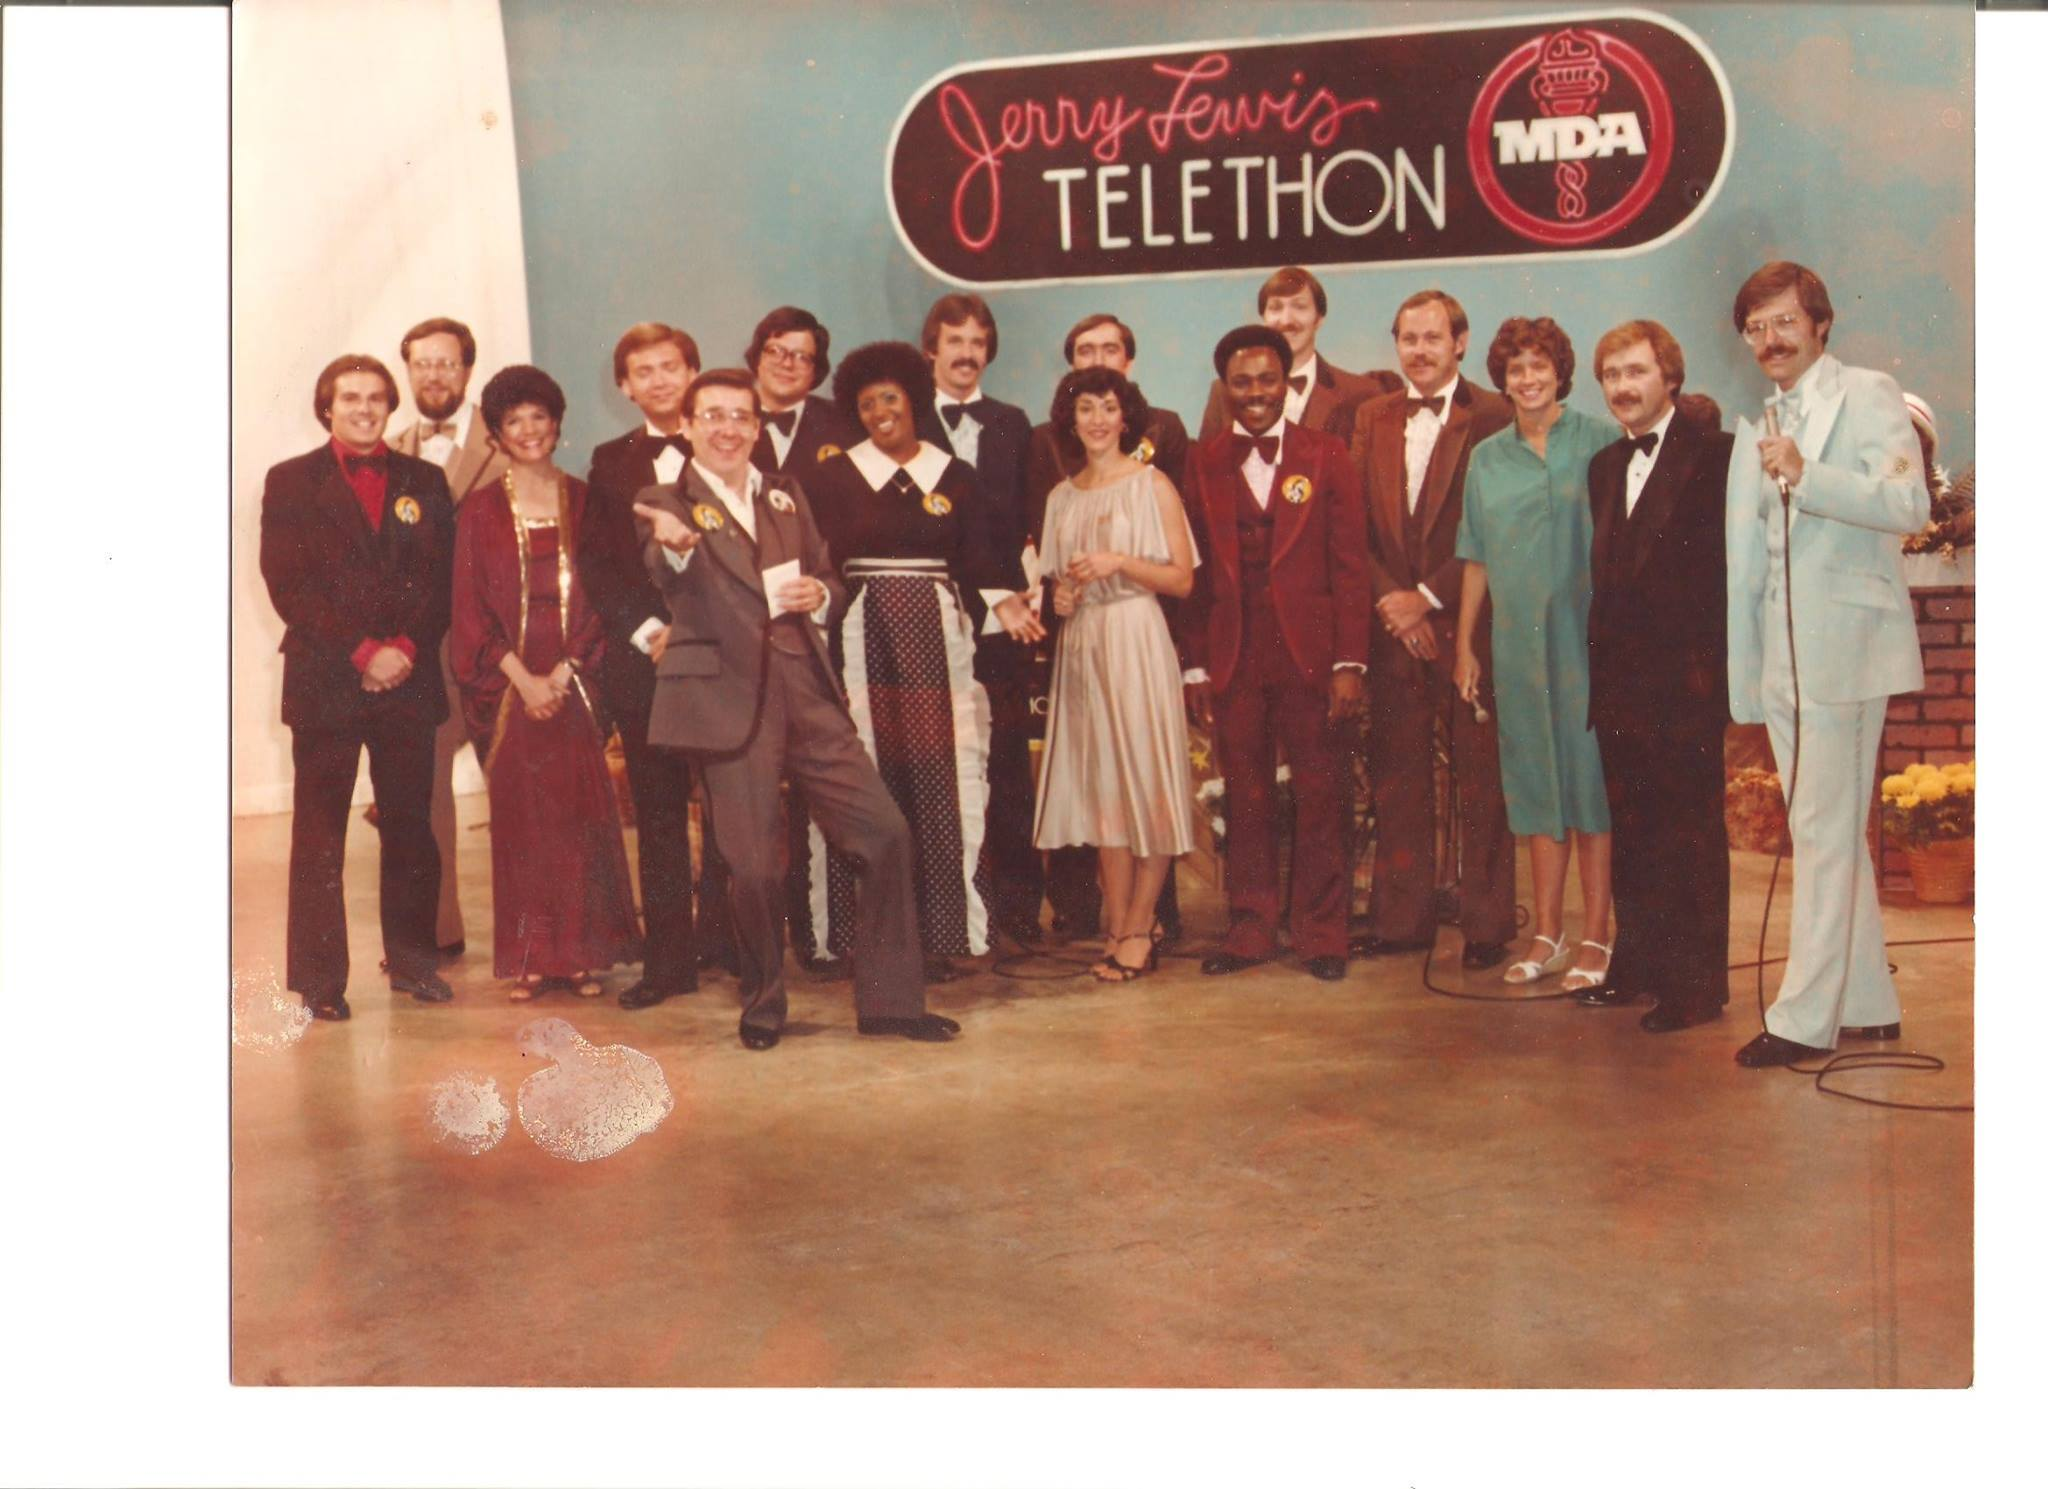 Bill with telethon around 1980_1541402208622.jpg.jpg